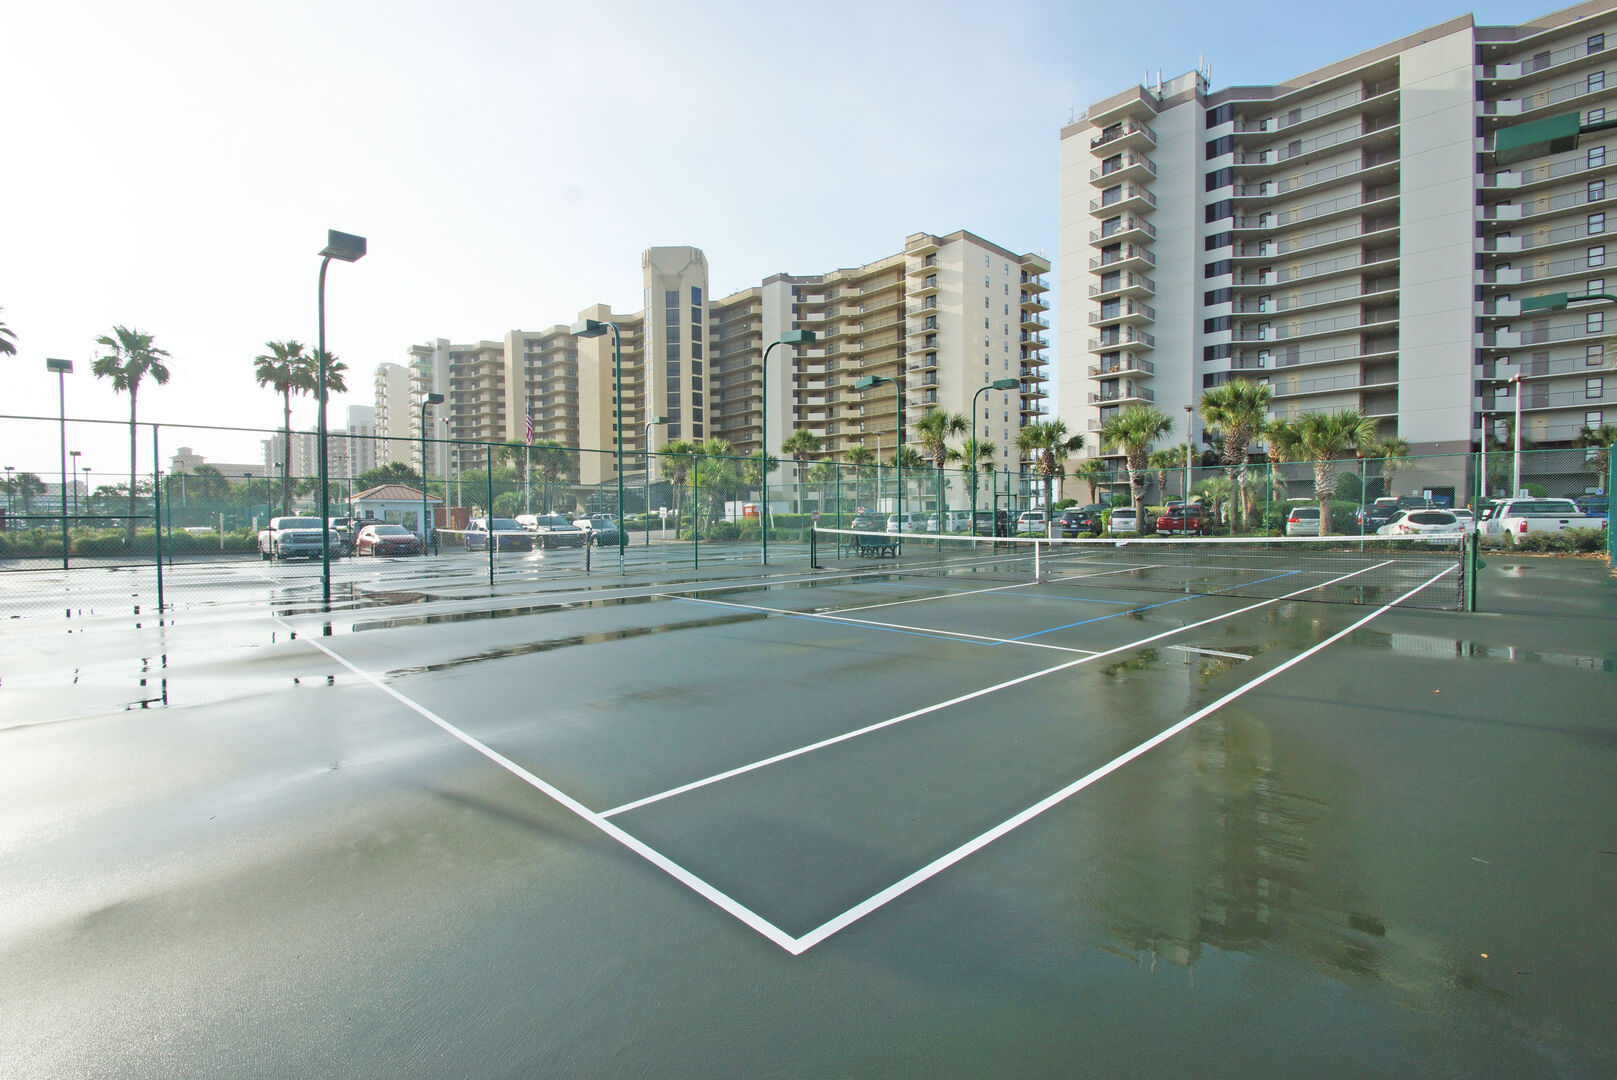 Picture of the Tennis Court.